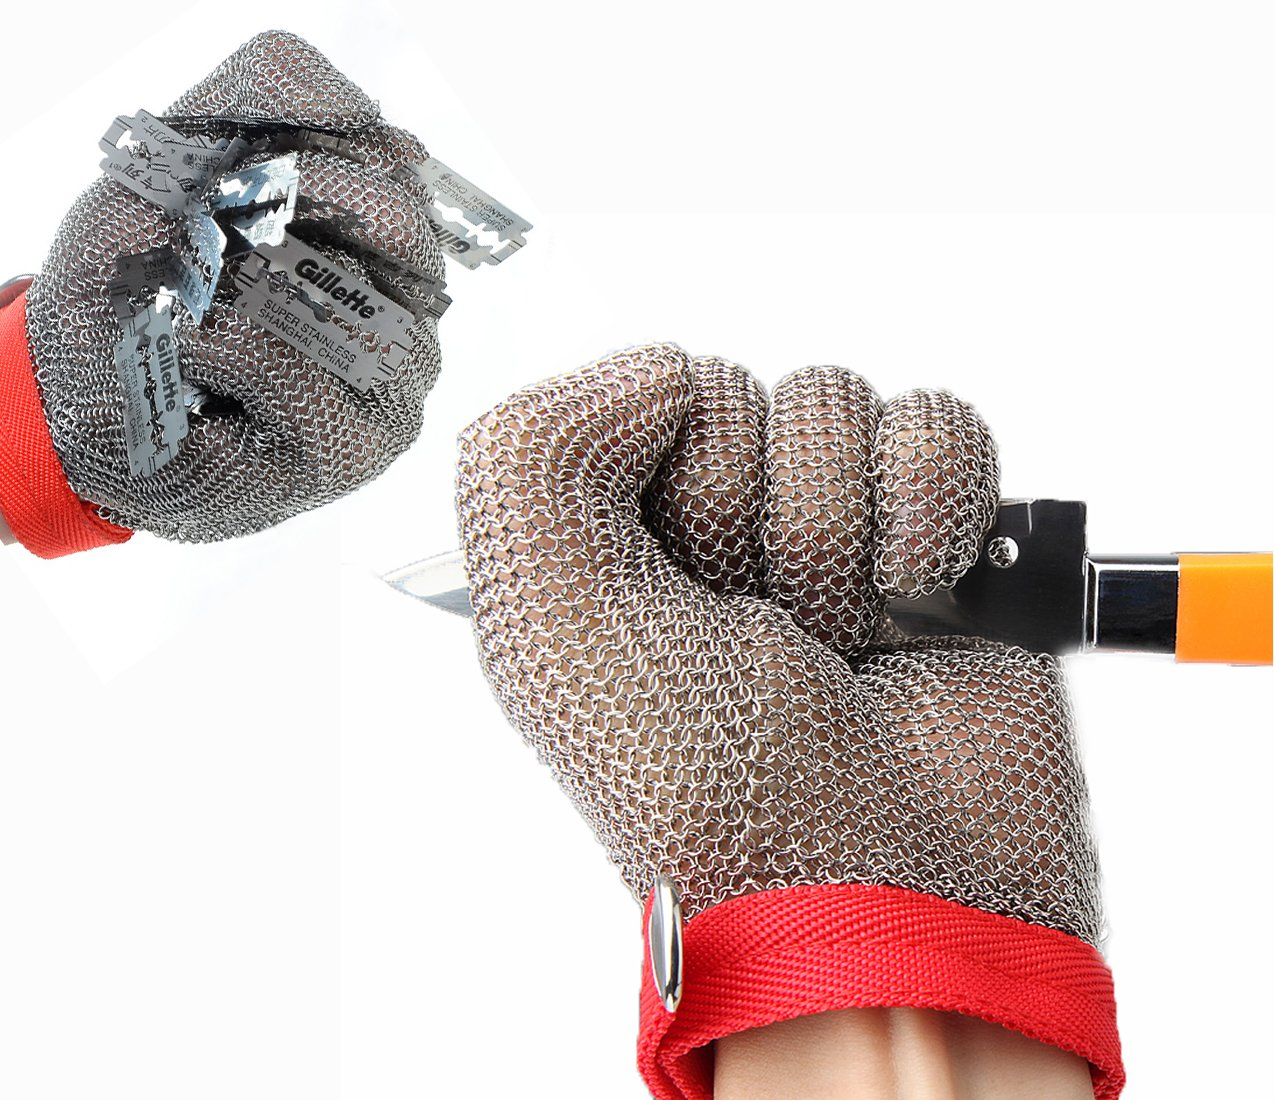 304L Stainless Steel Cut Resistant Gloves with Secure-Grip Steel Chain Mail Mesh and Level 5 Cut Protection Kitchen Food Grade Gloves Kitchen Butcher Working Safety Glove 1 Pcs (XL)